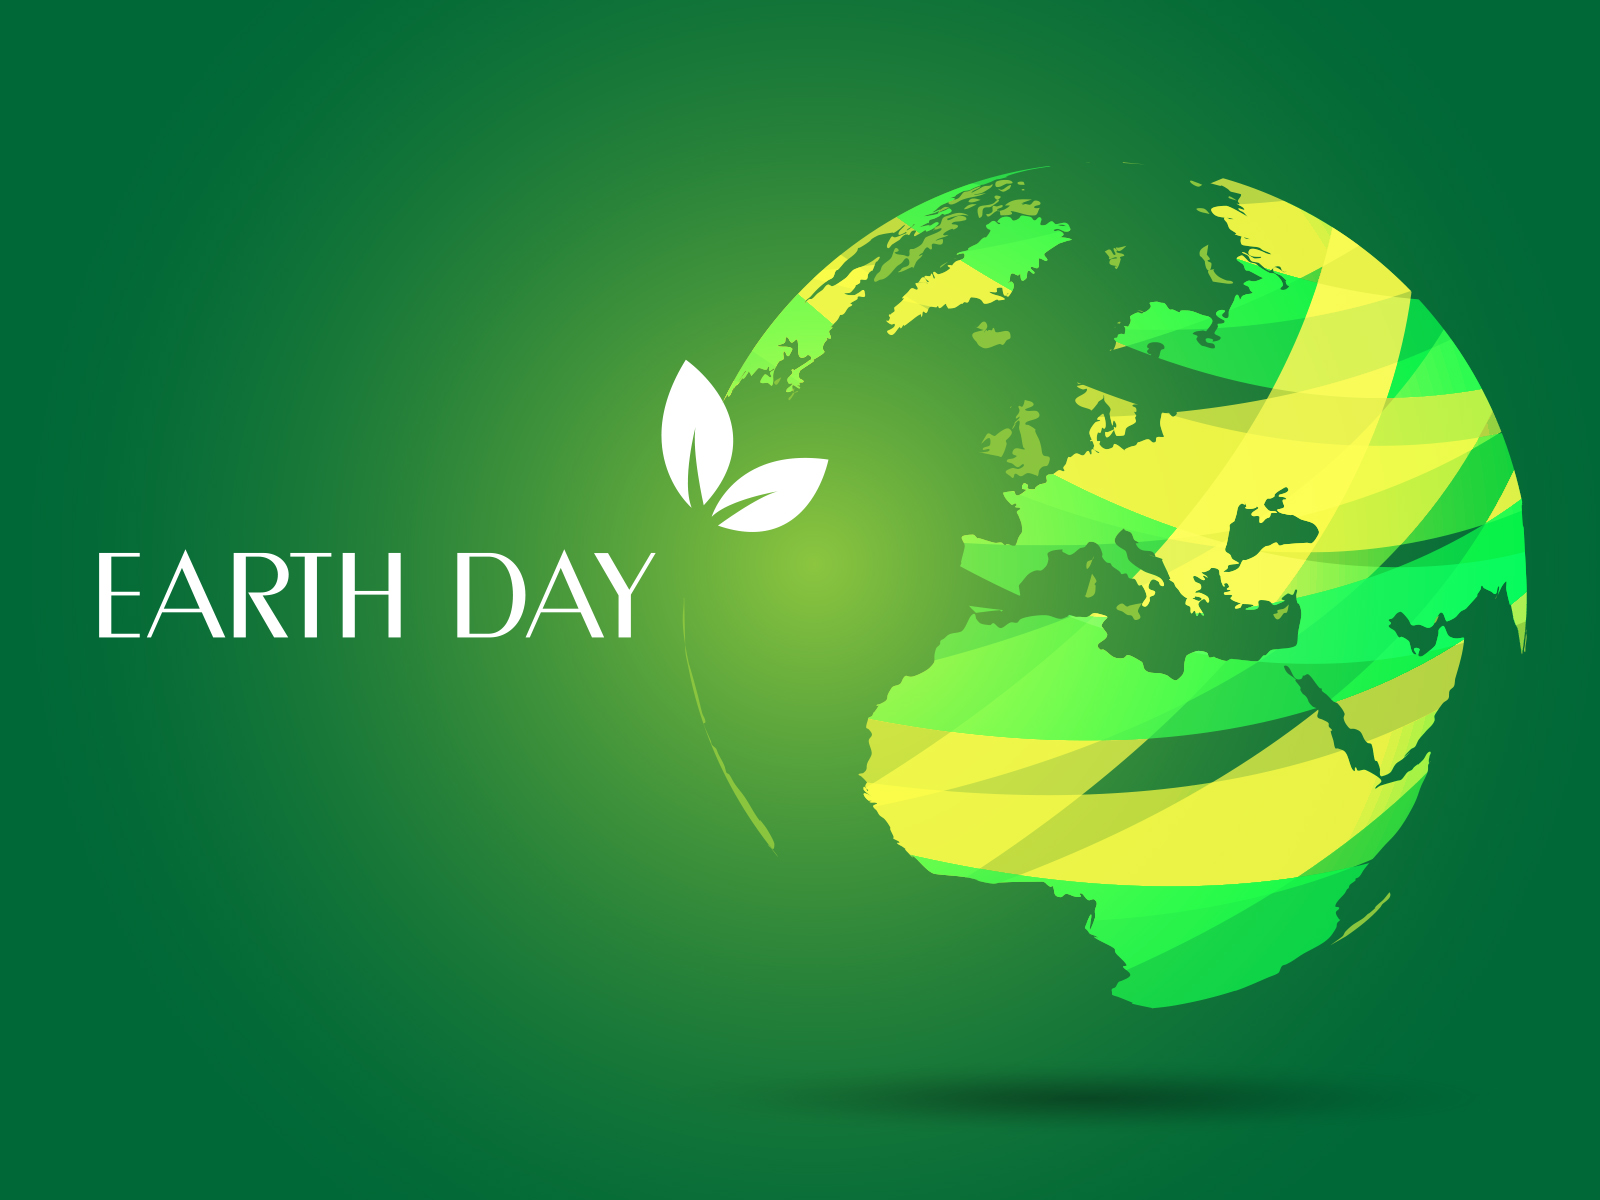 earth day ppt backgrounds - 3d, green, white templates - ppt grounds, Modern powerpoint